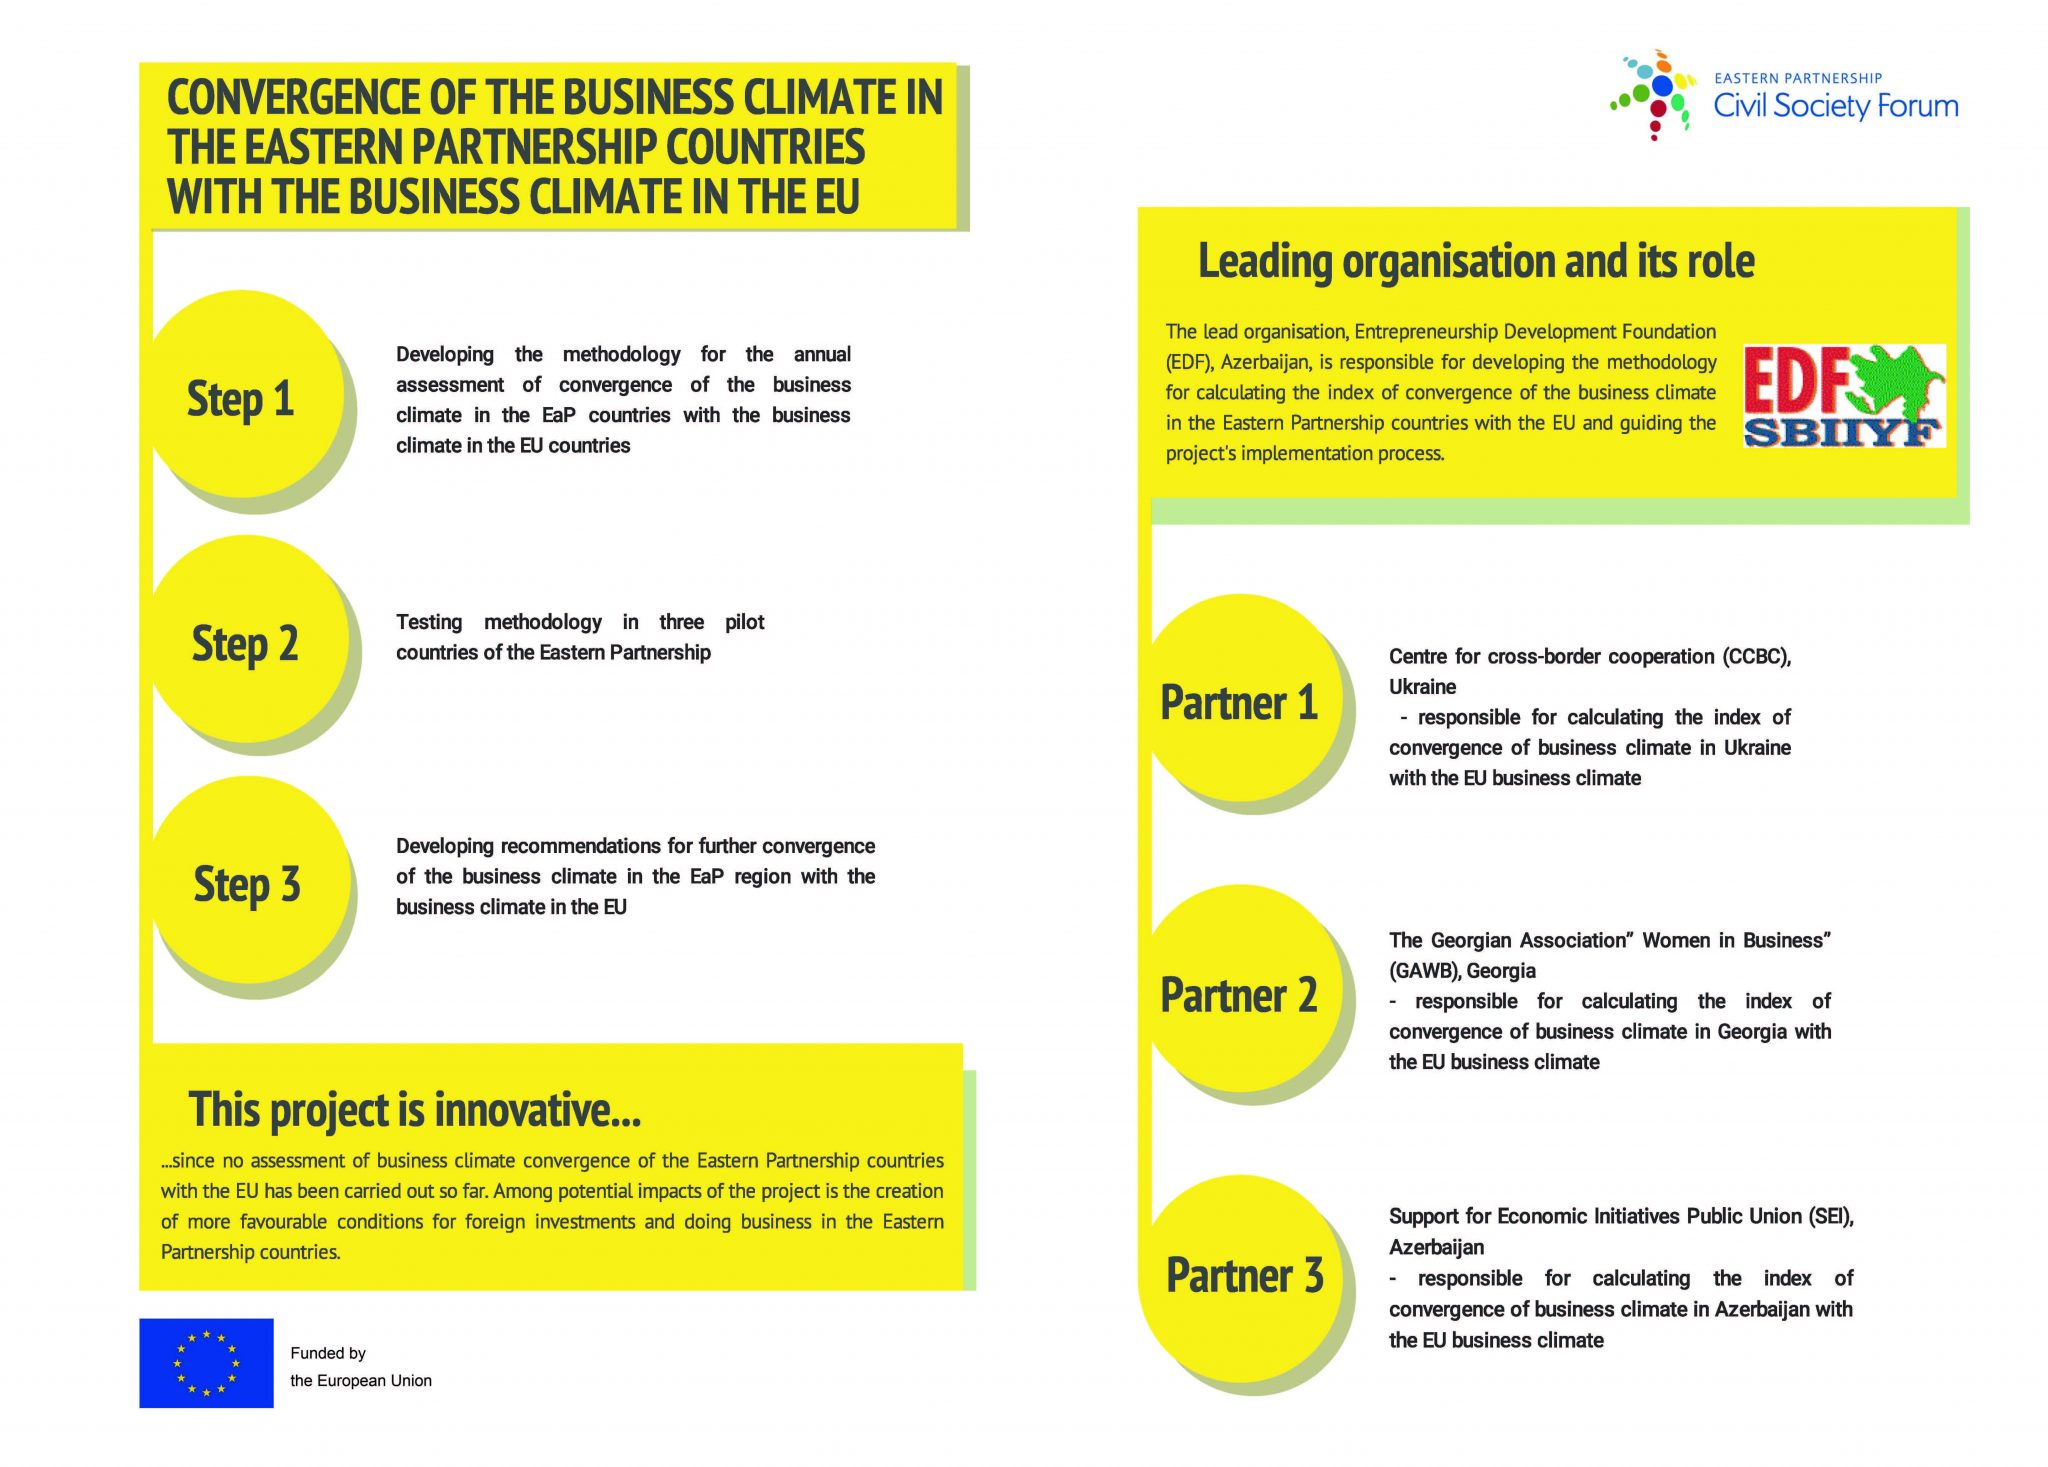 Convergence Business Climate in the Eastern Partnership Countries with the Business Climate in the EU